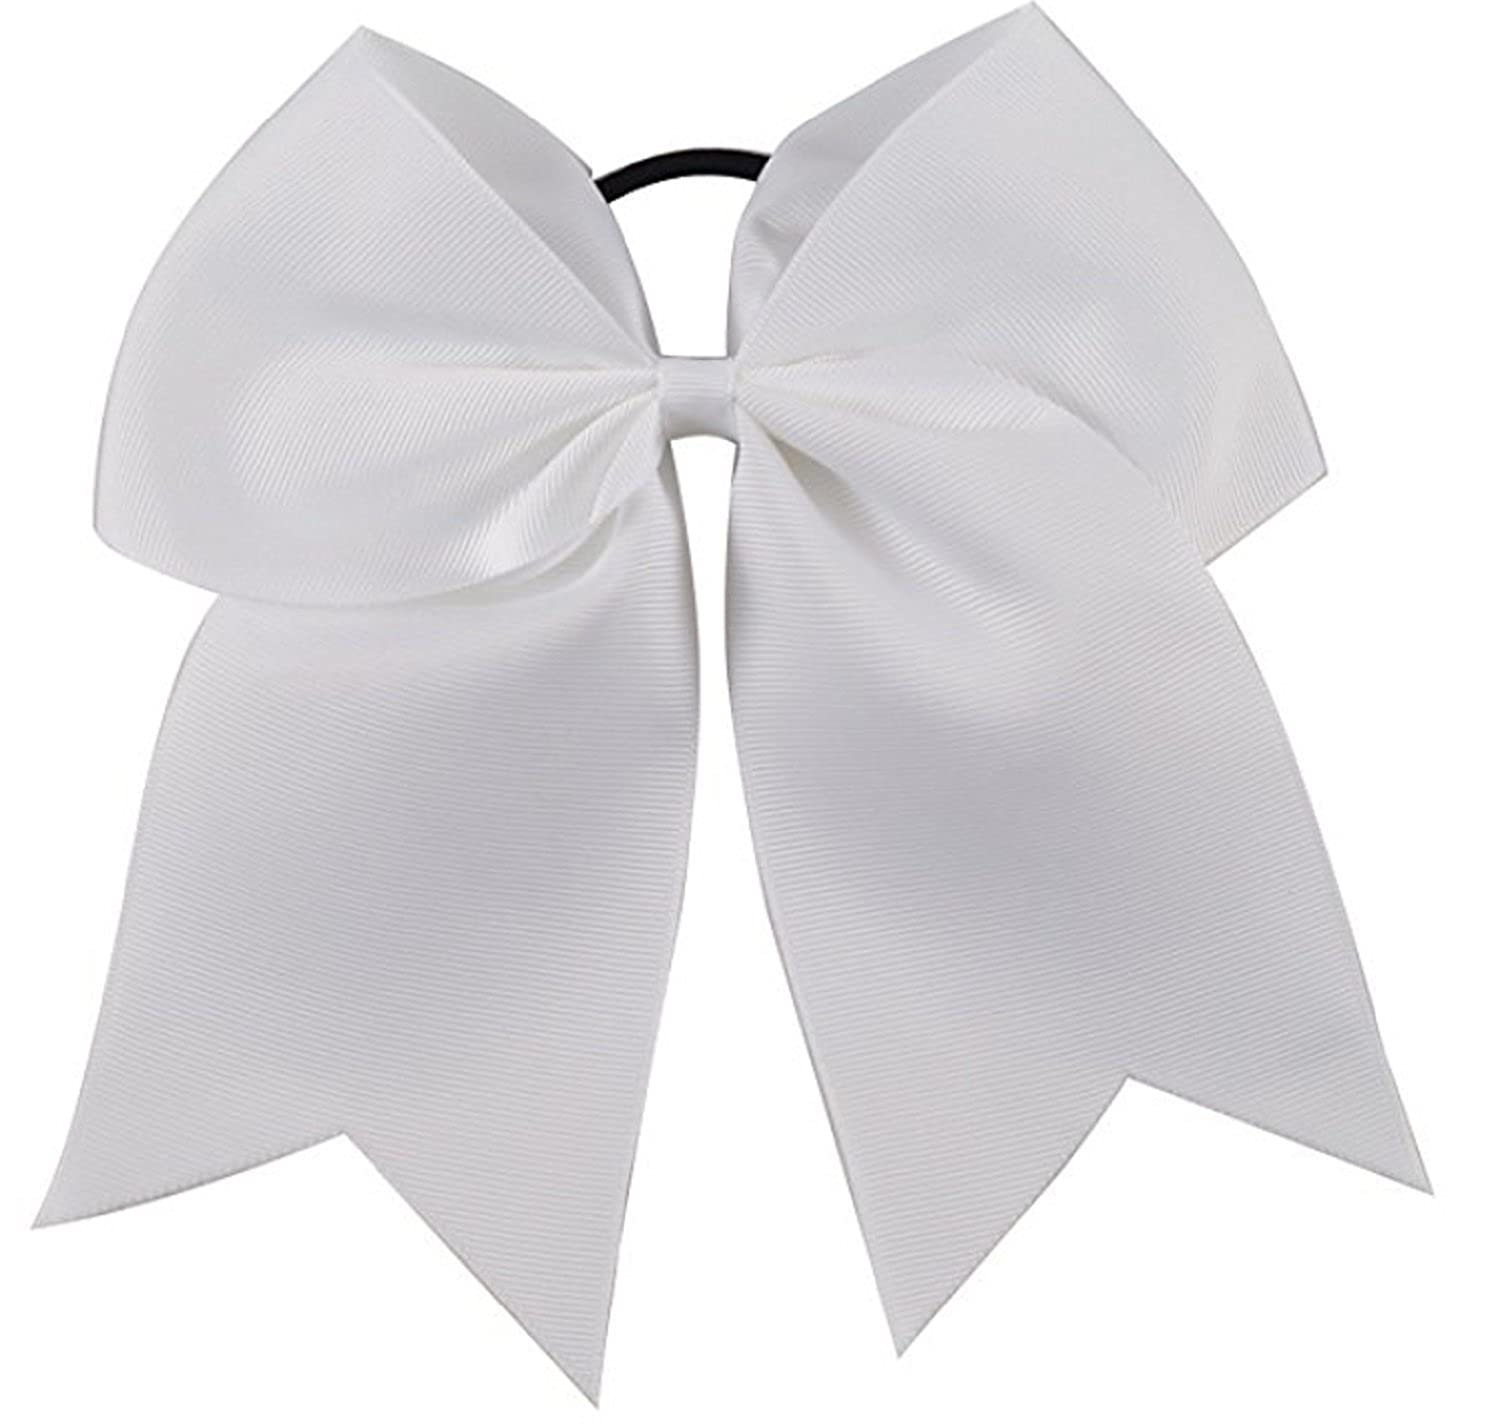 ... Bows White Cheerleading Softball - Gifts for Girls and Women Team Bow  with Ponytail Holder Complete Your Cheerleader Outfit Uniform Strong Hair  Ties ... 6900a3e8f93